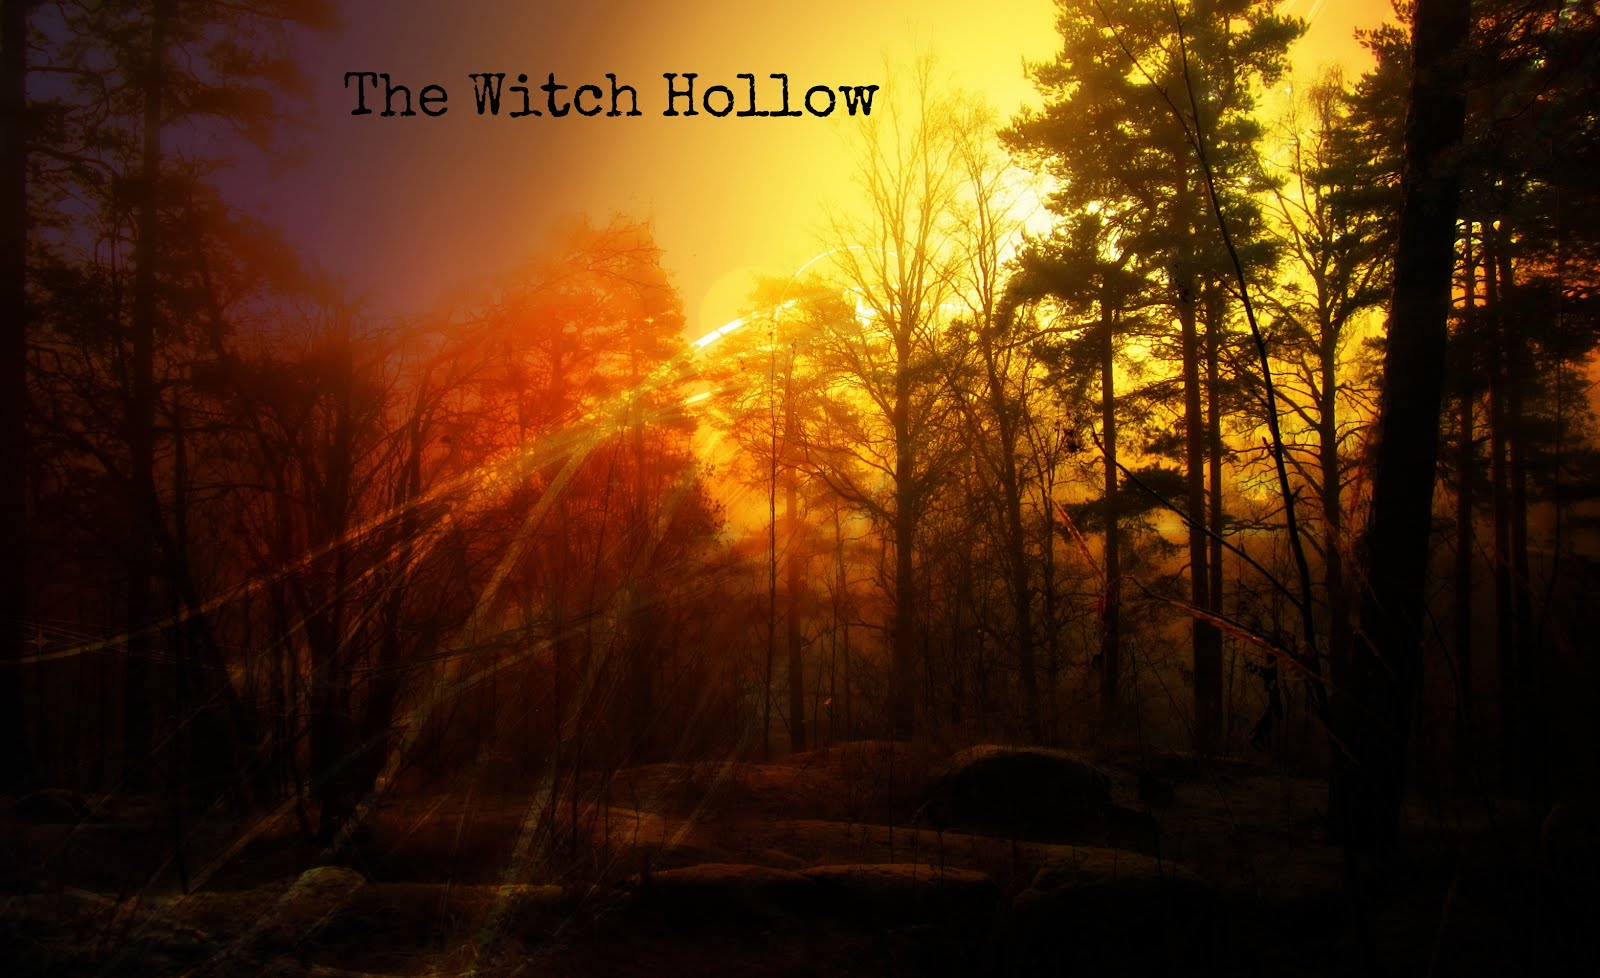 The Witch Hollow